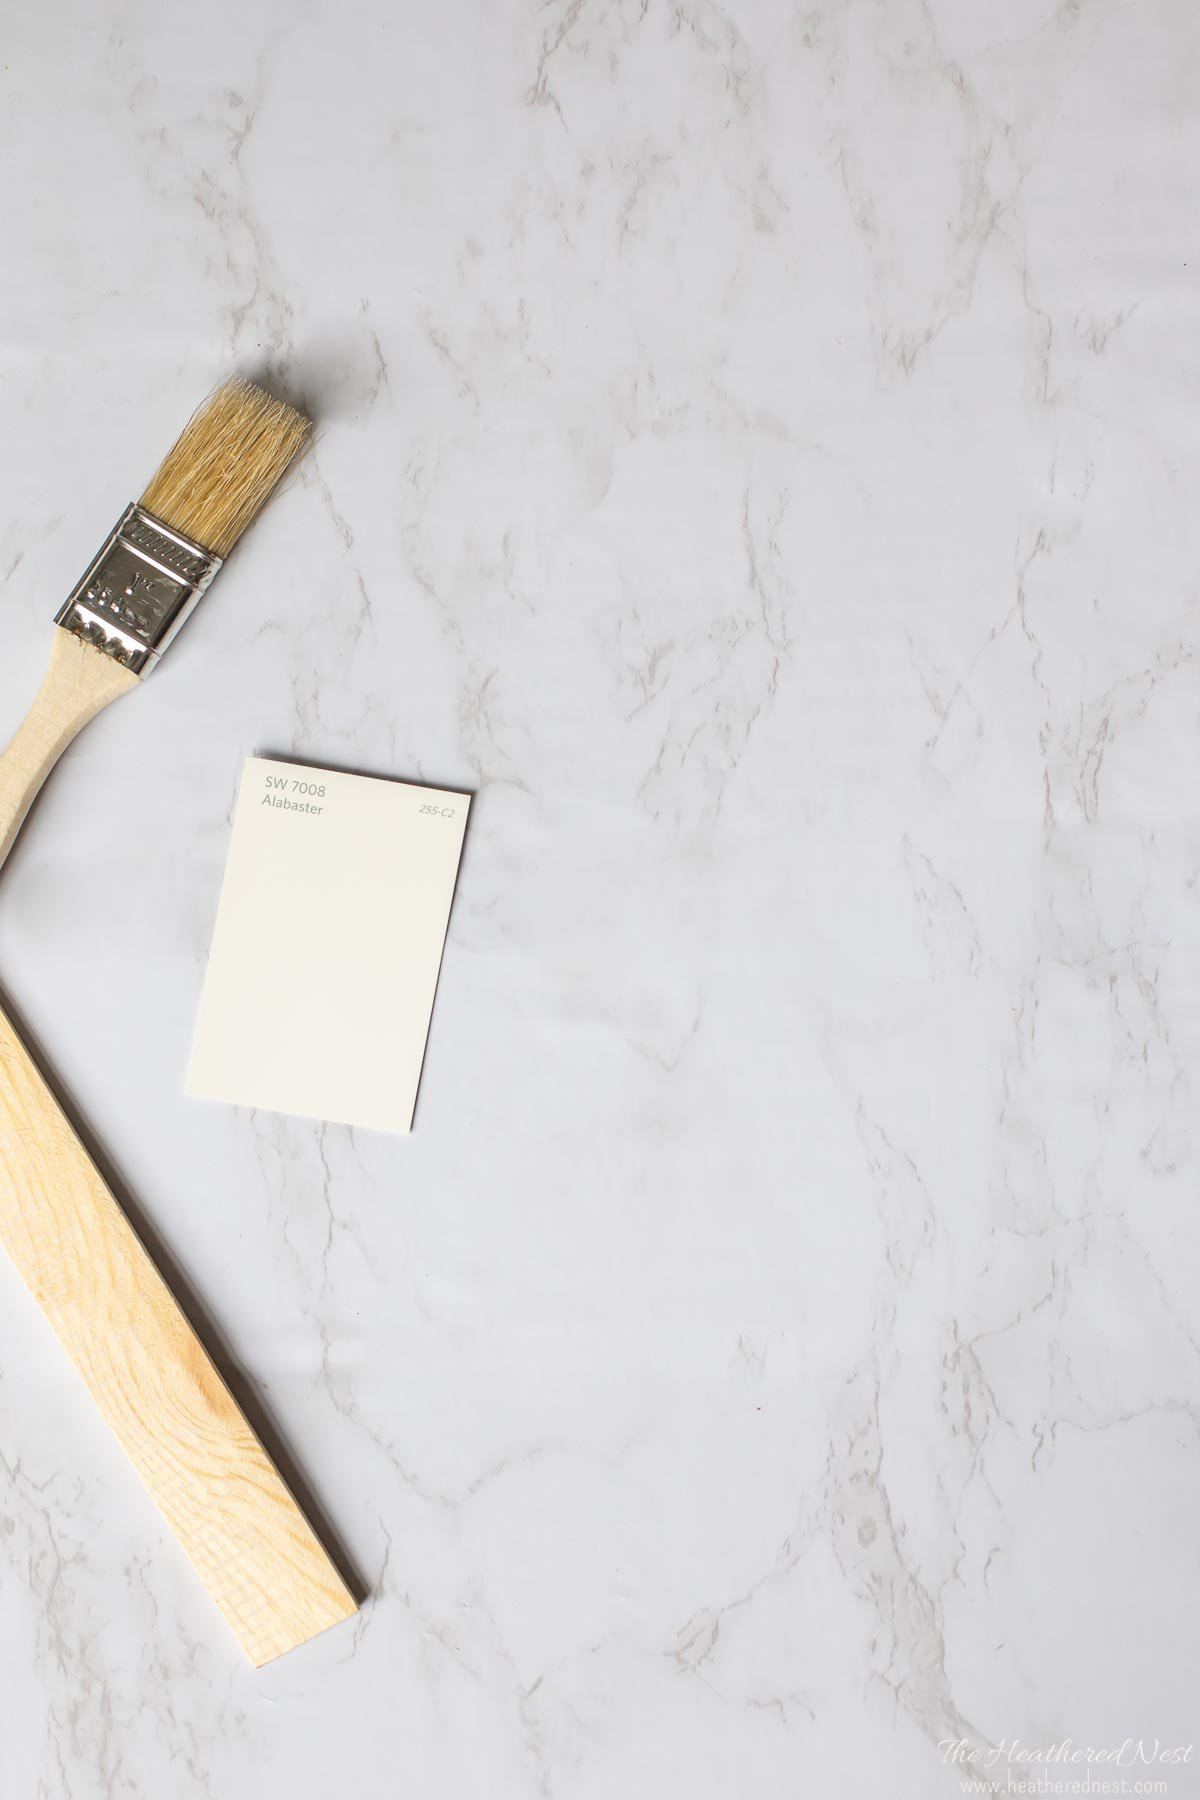 Alabaster paint chip on marble background with paintbrush and wood paint stirrer